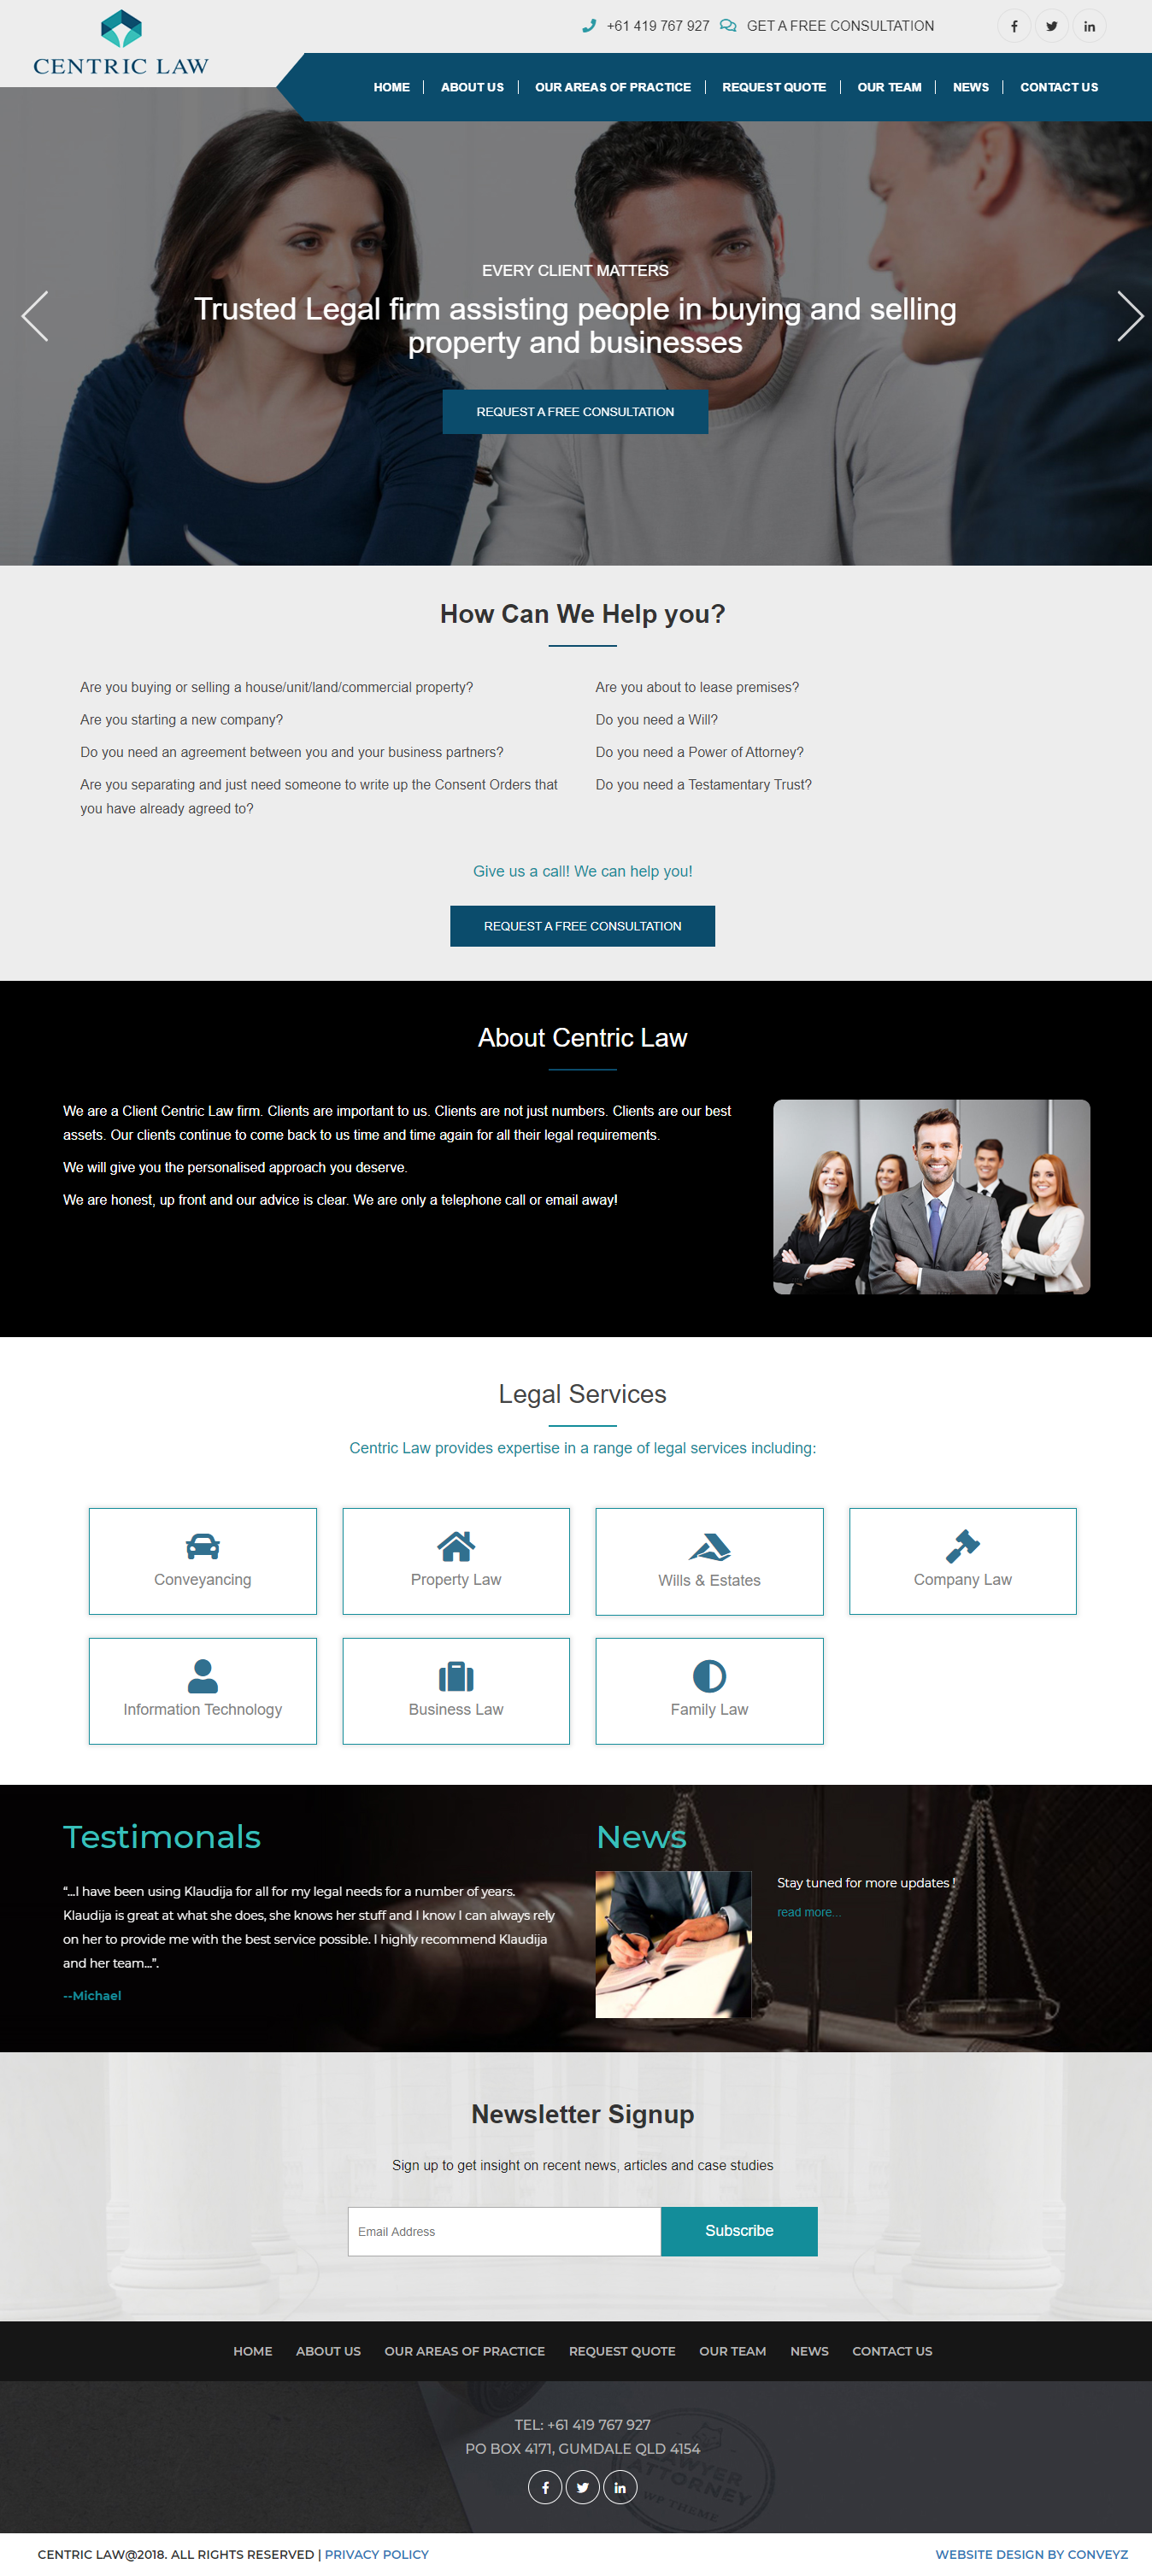 Website Design for Centric Law